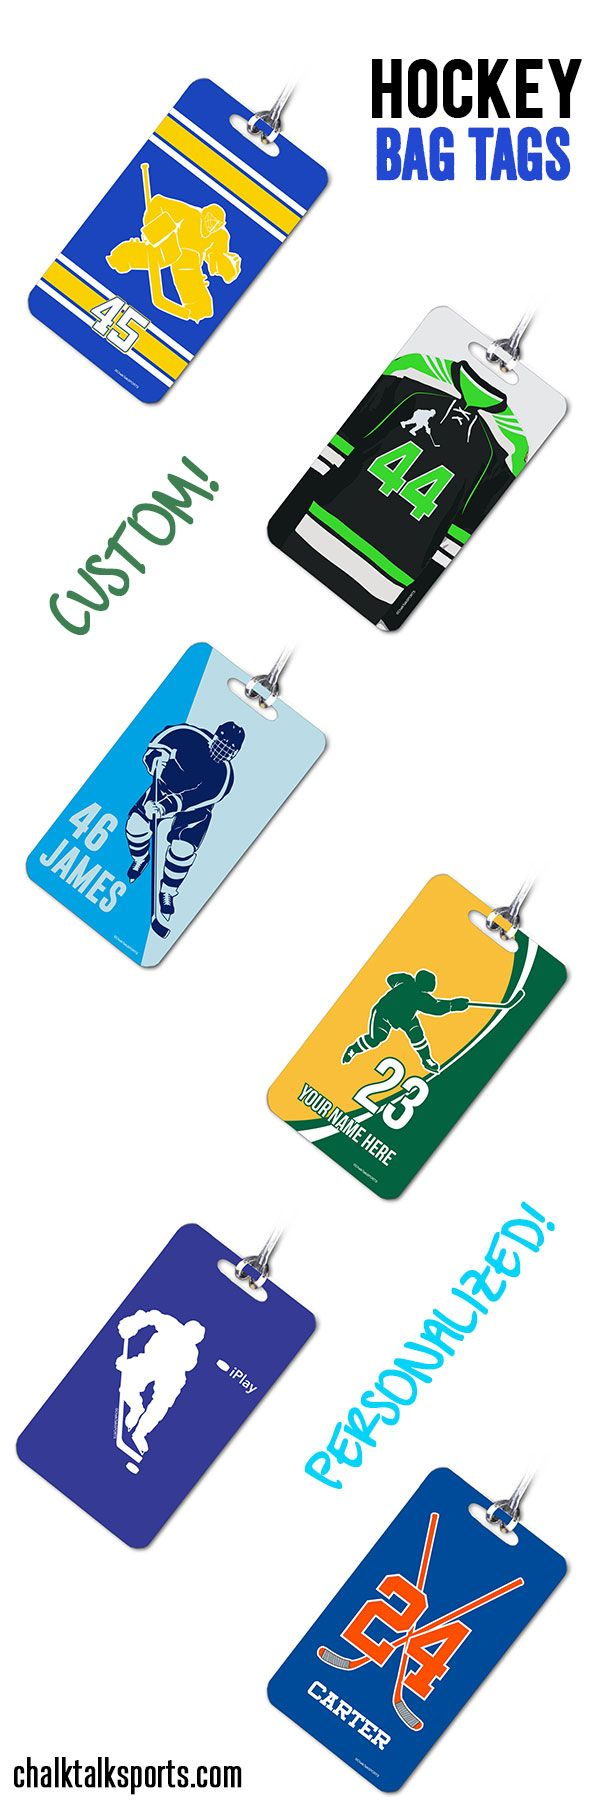 Our hockey bag tags make great gifts for hockey players, hockey teammates and even hockey coaches!  Head to ChalkTalkSPORTS.com to personalize a custom hockey bag tag as the next gift for your favorite hockey player!